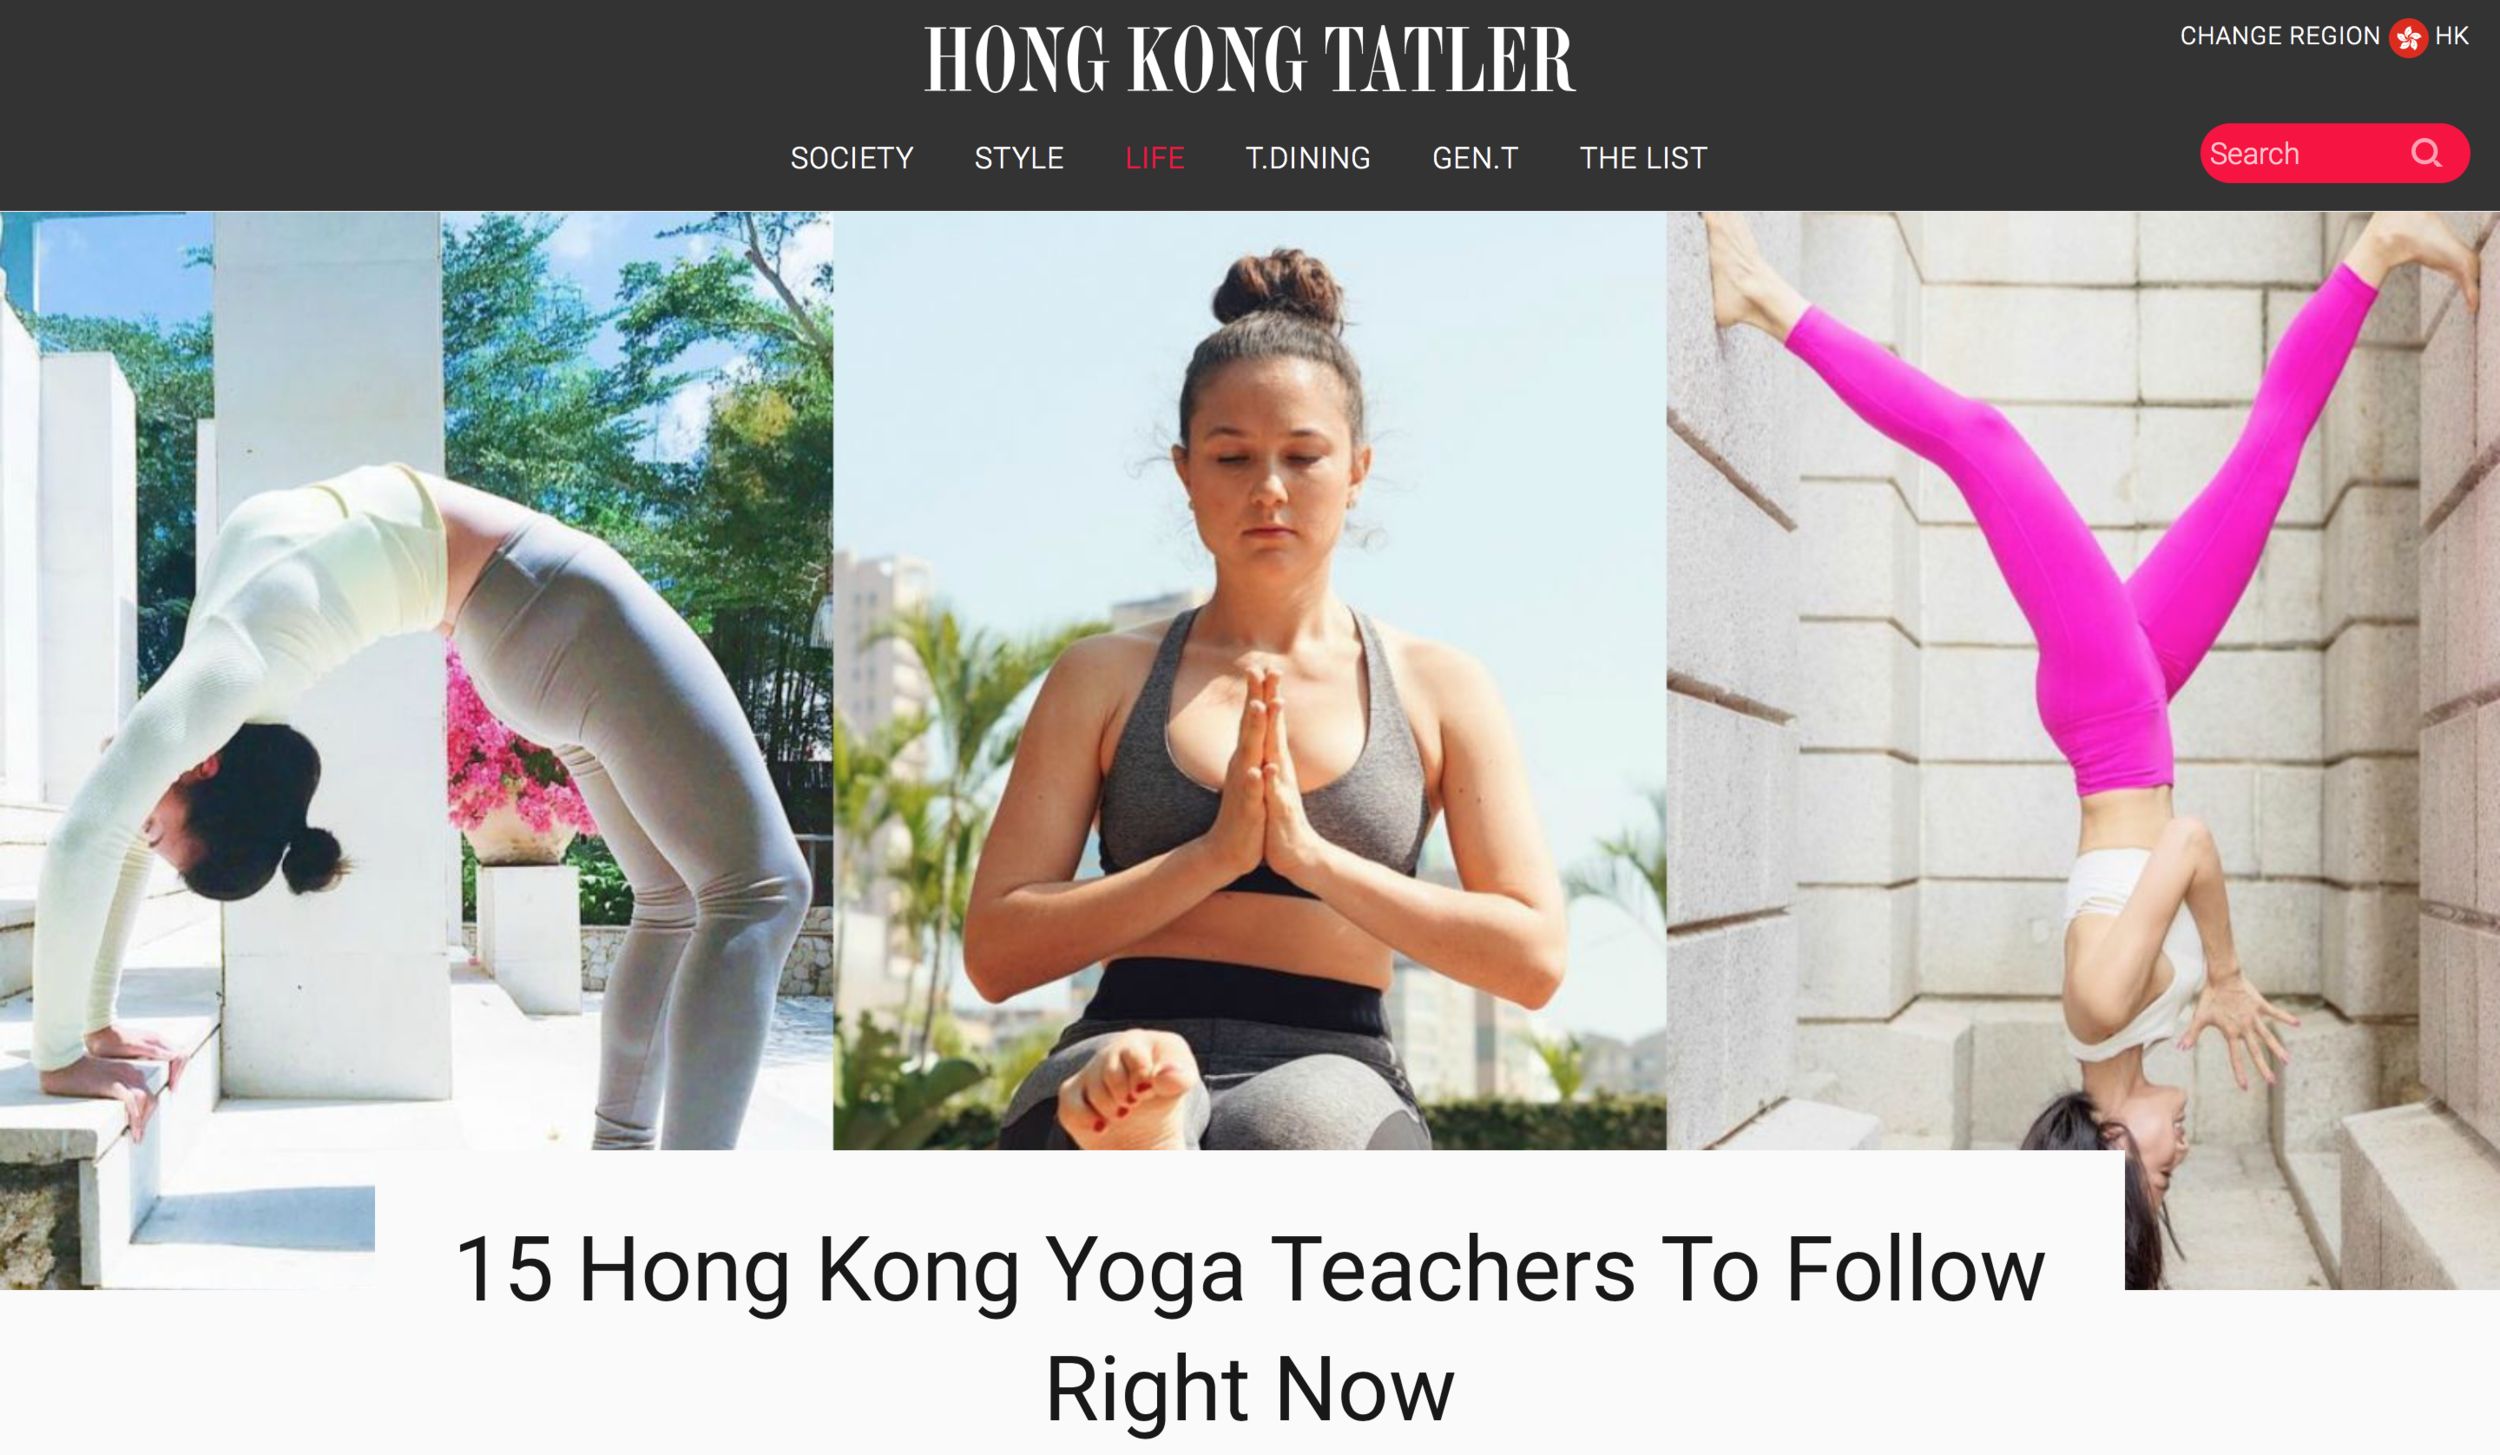 15 Hong Kong Yoga Teachers To Follow Right Now - Hong Kong Tatler